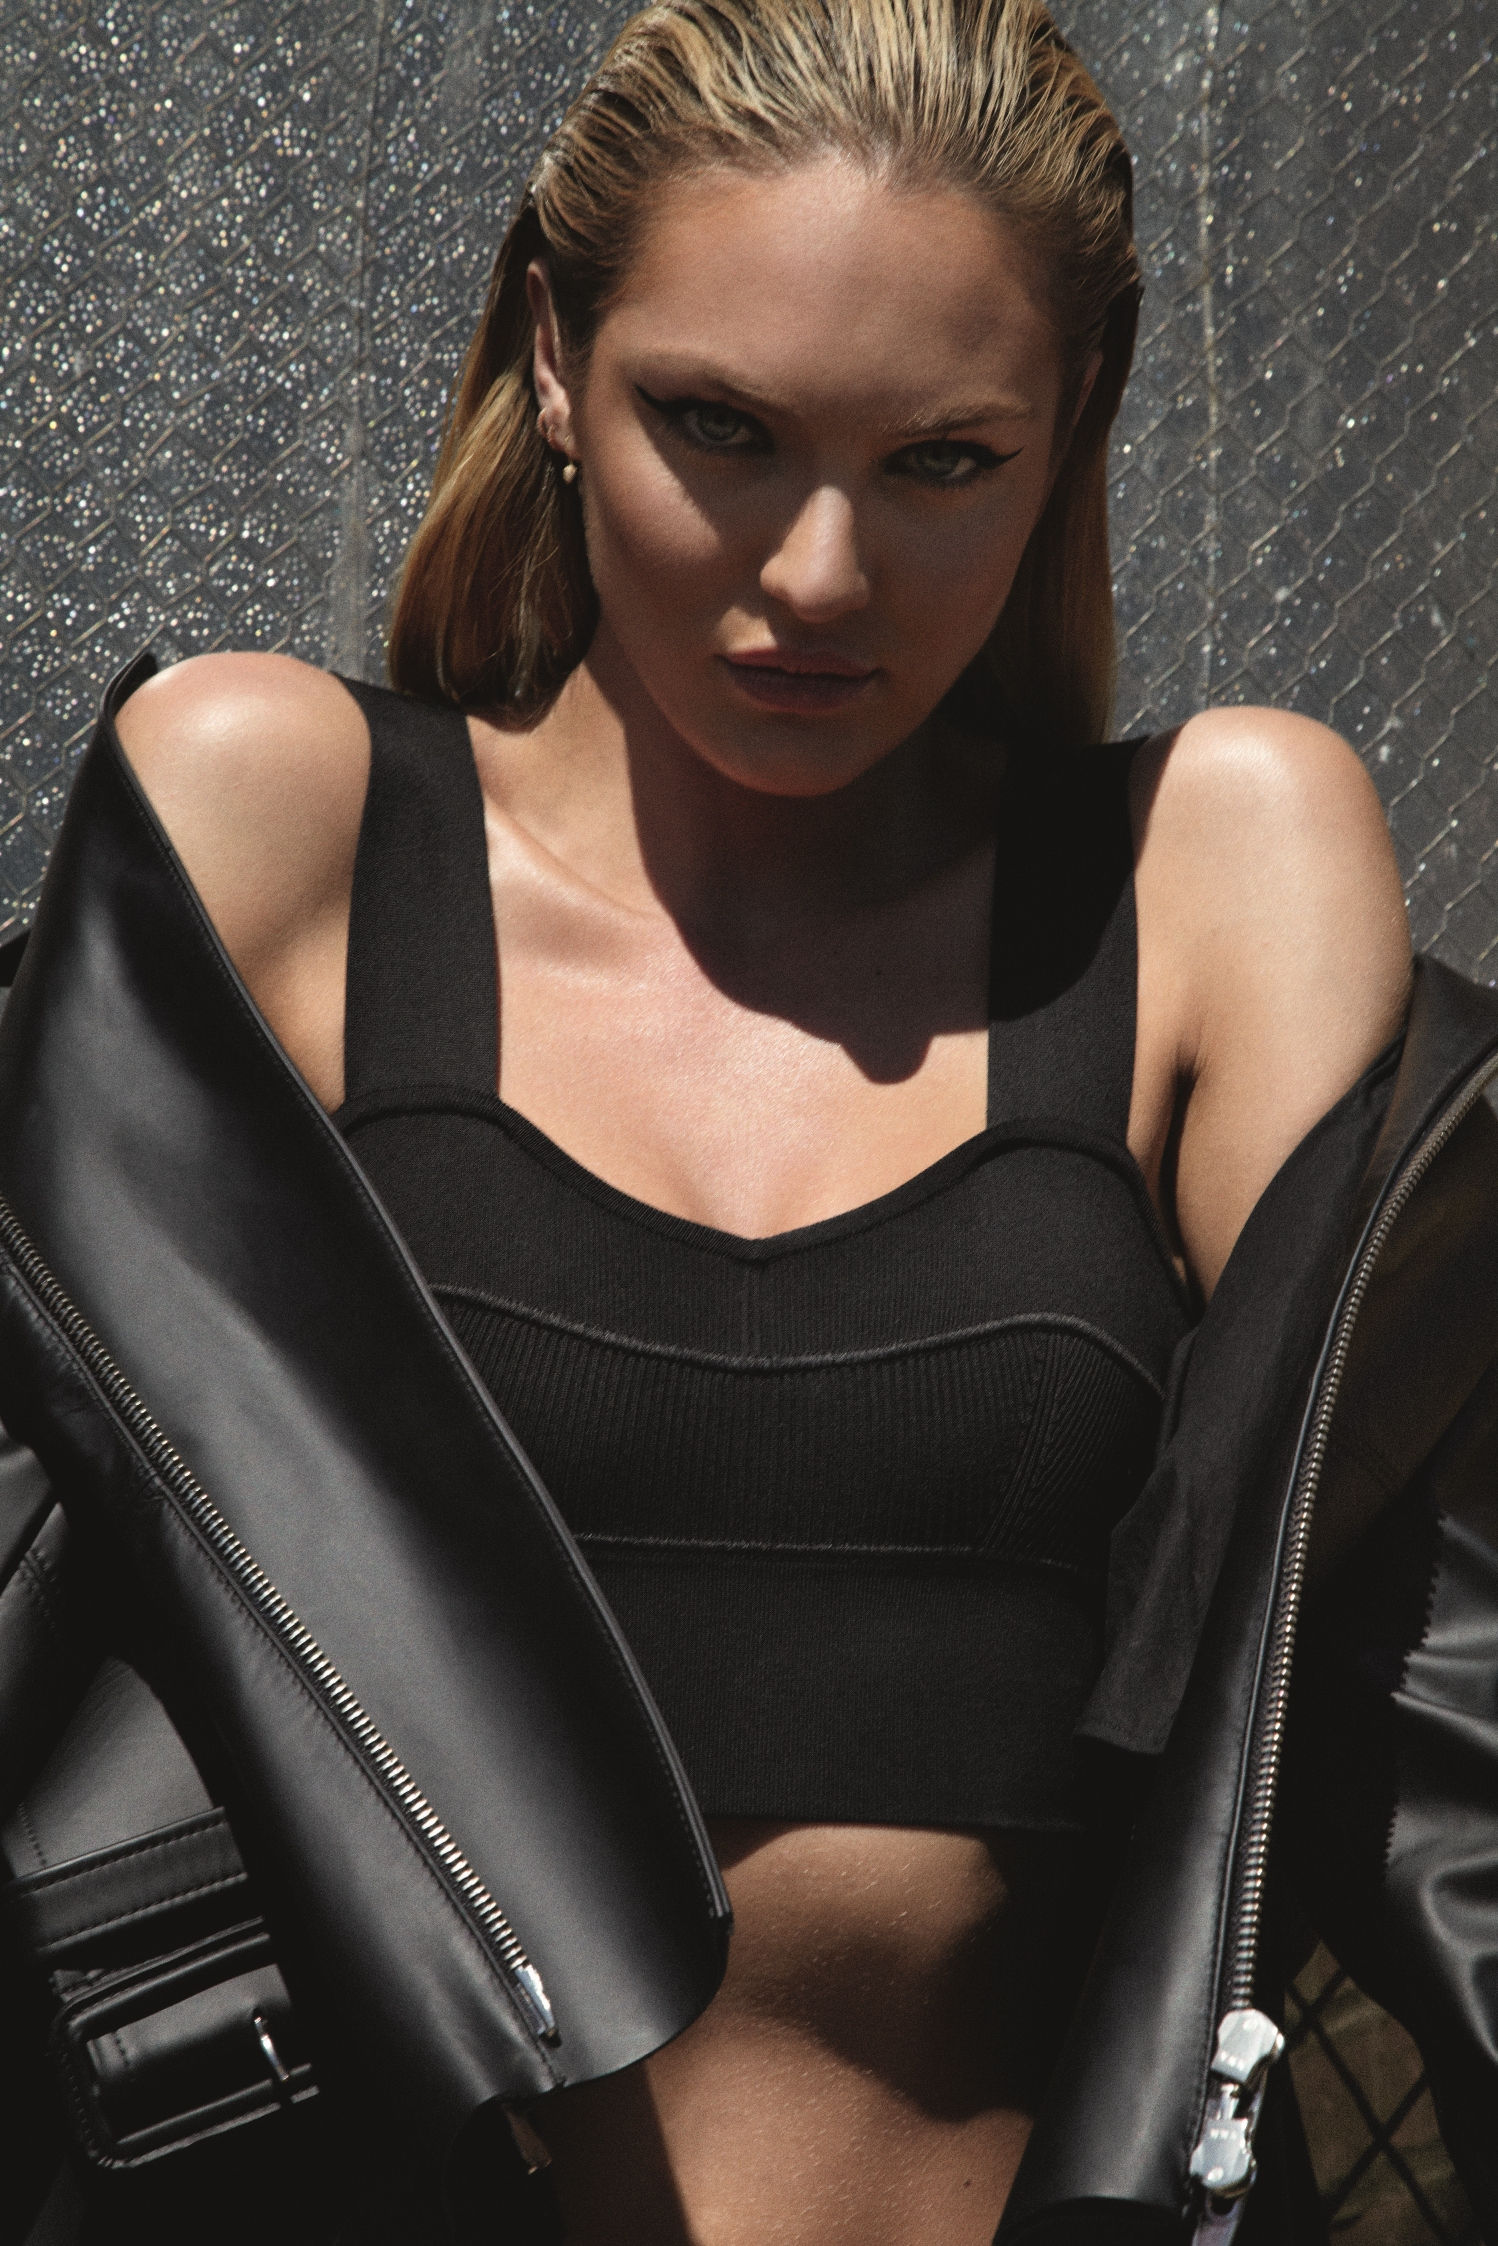 Candice Swanepoel 2012 : candice-swanepoel-collier-schorr-photoshoot-for-muse-magazine-08